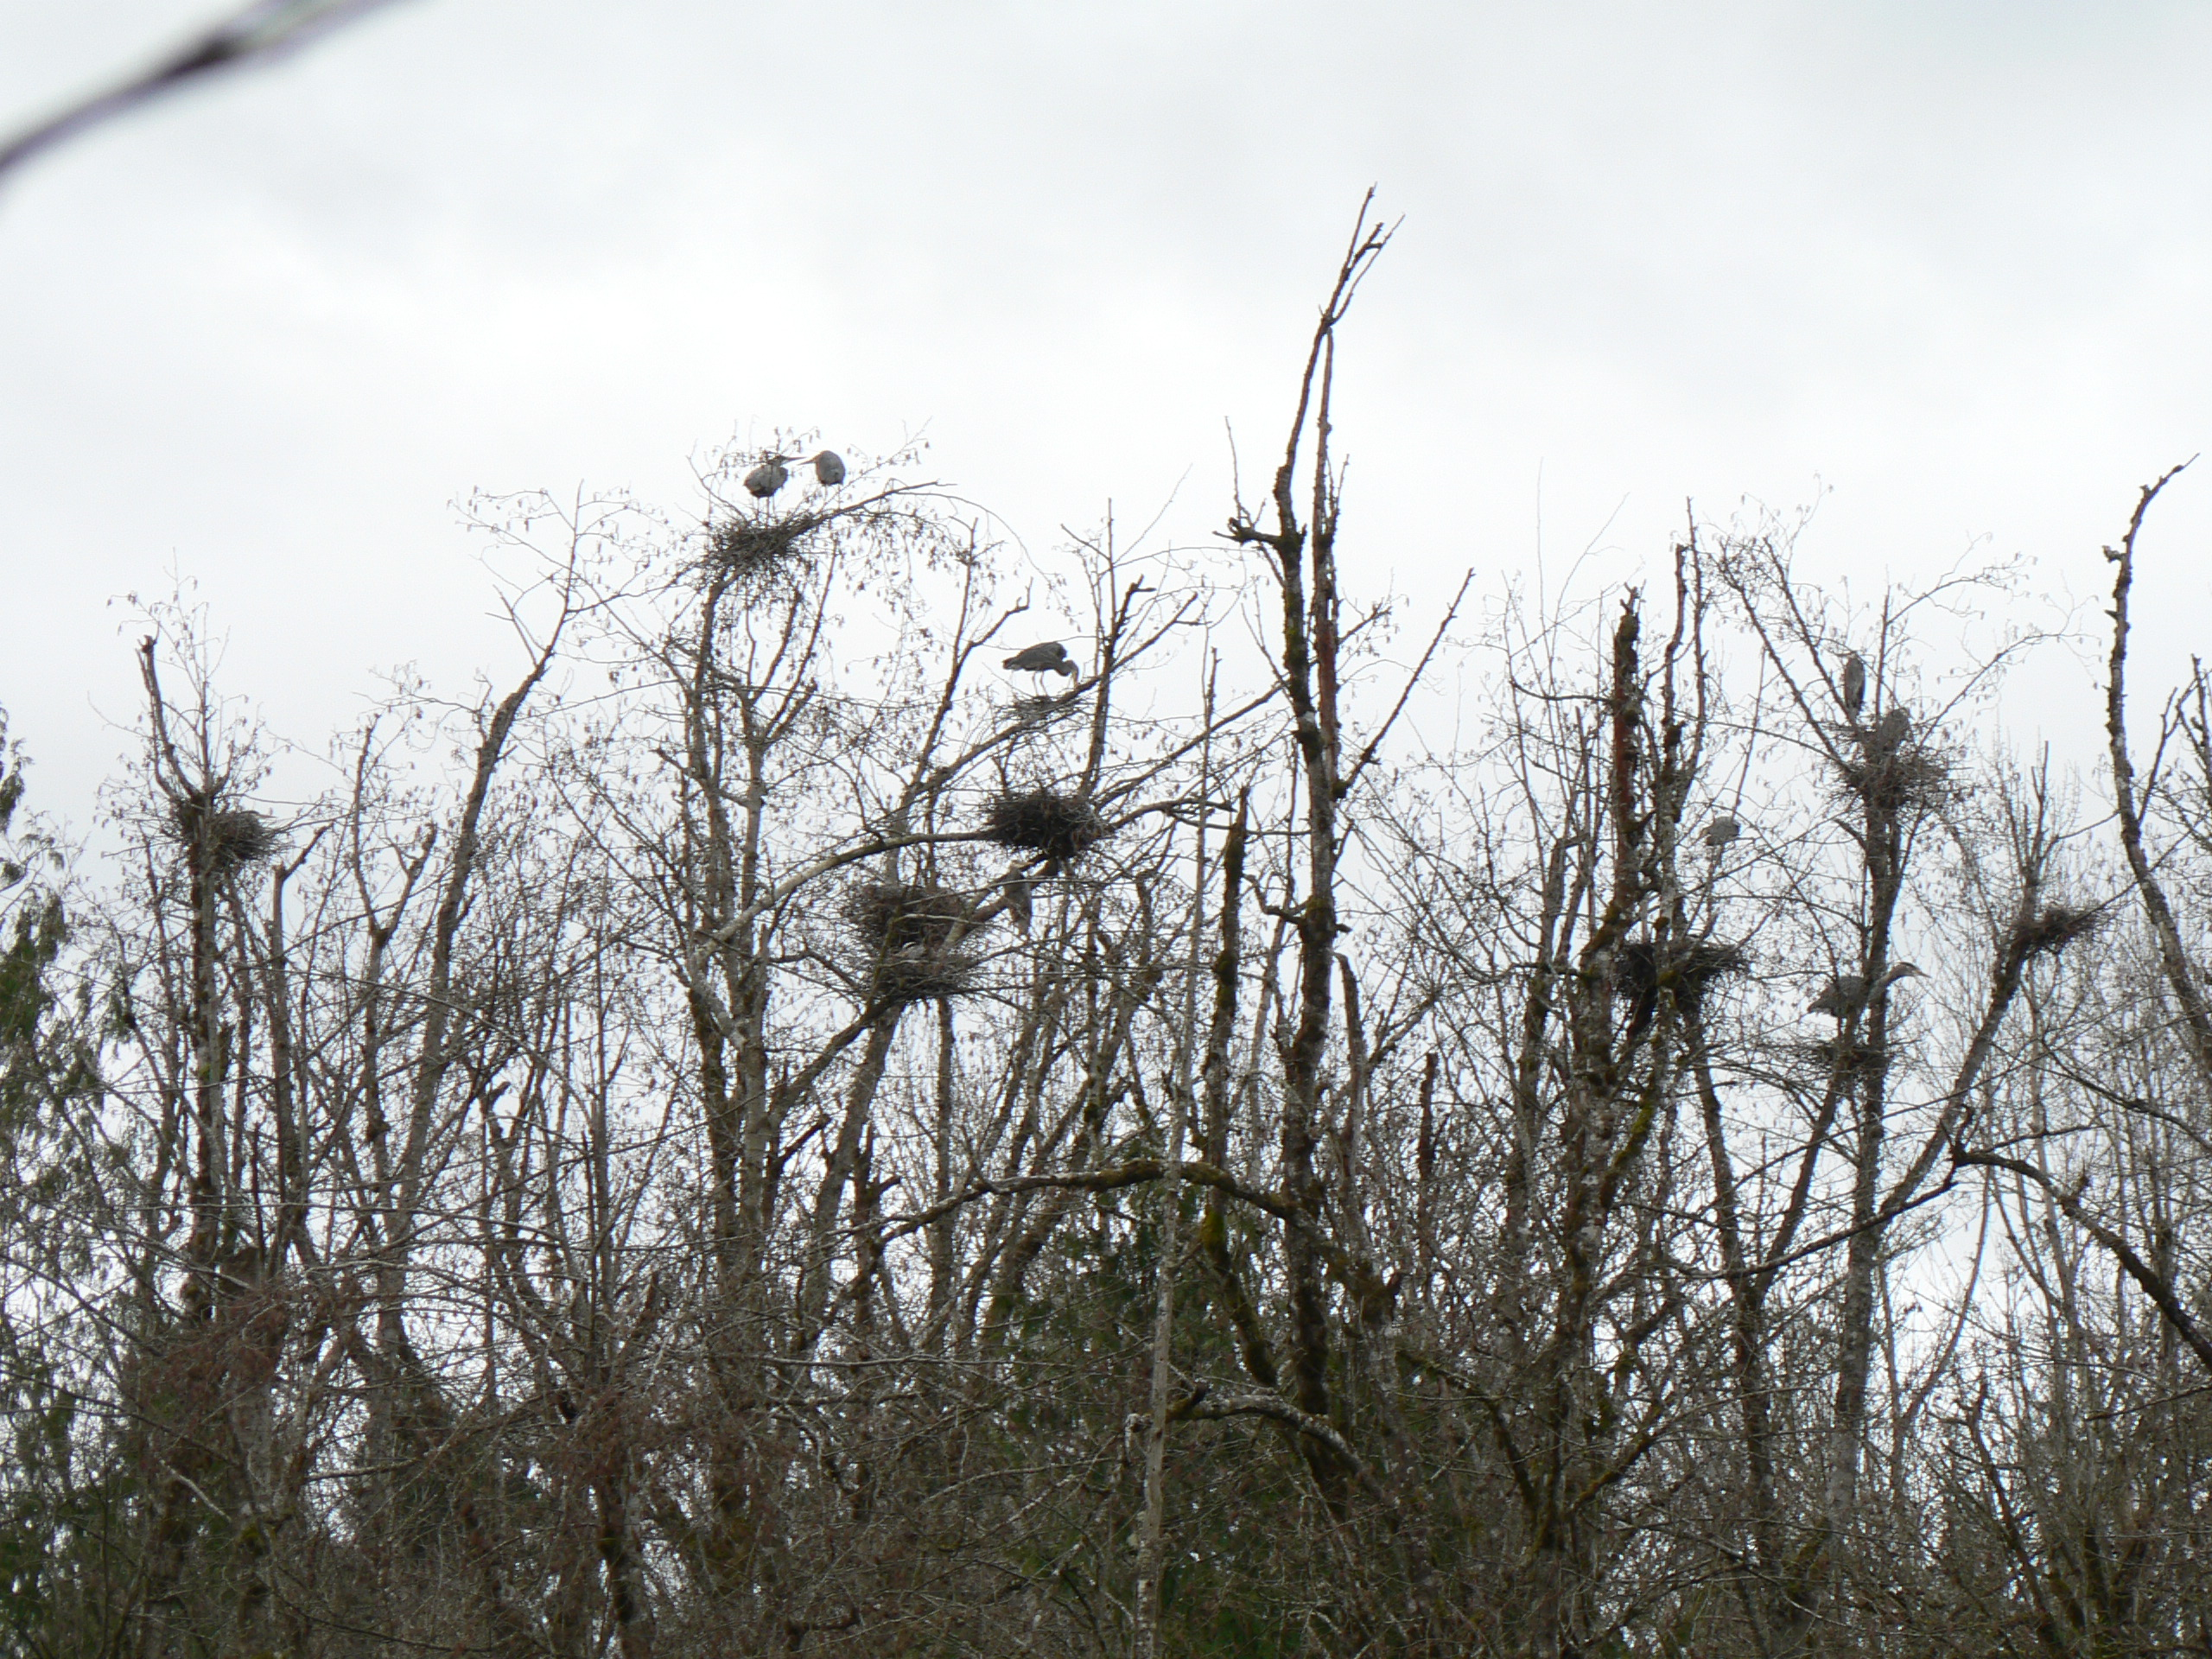 bird-great-blue-heron-heronry-has-doubled-in-size